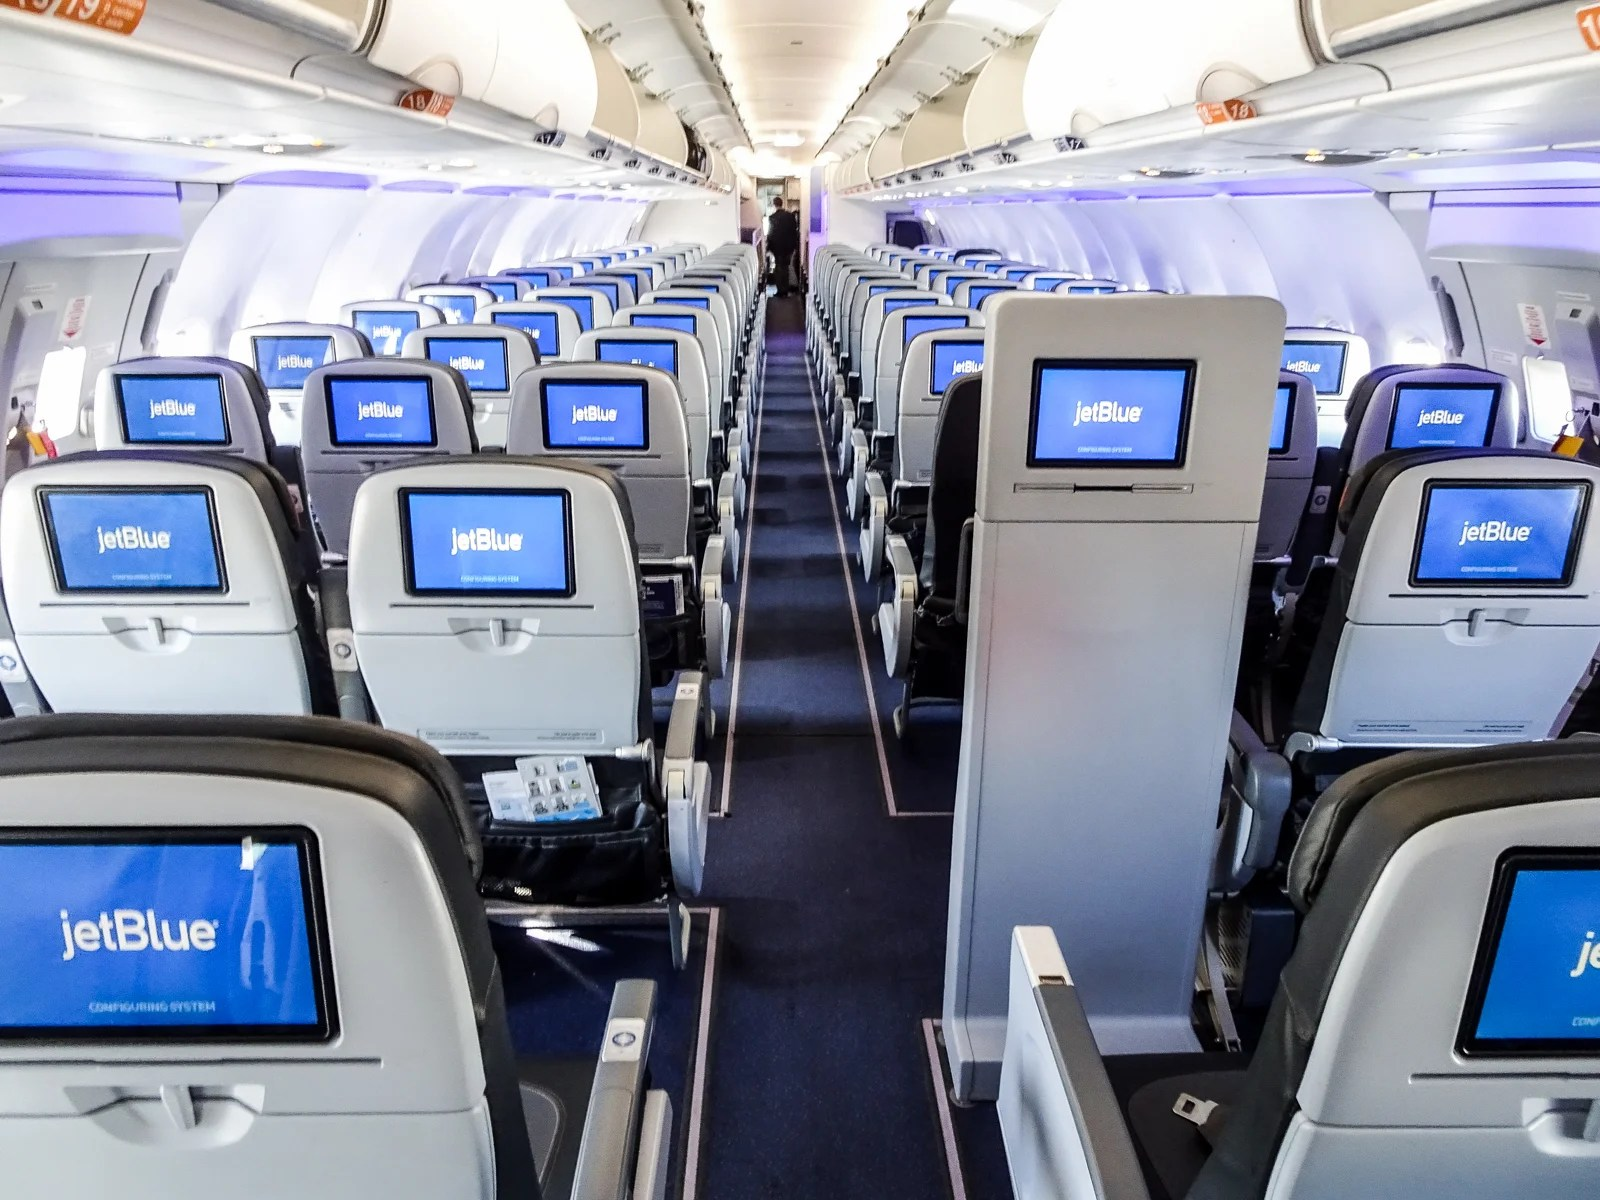 Review: JetBlue Economy on the A321 From San Diego to JFK